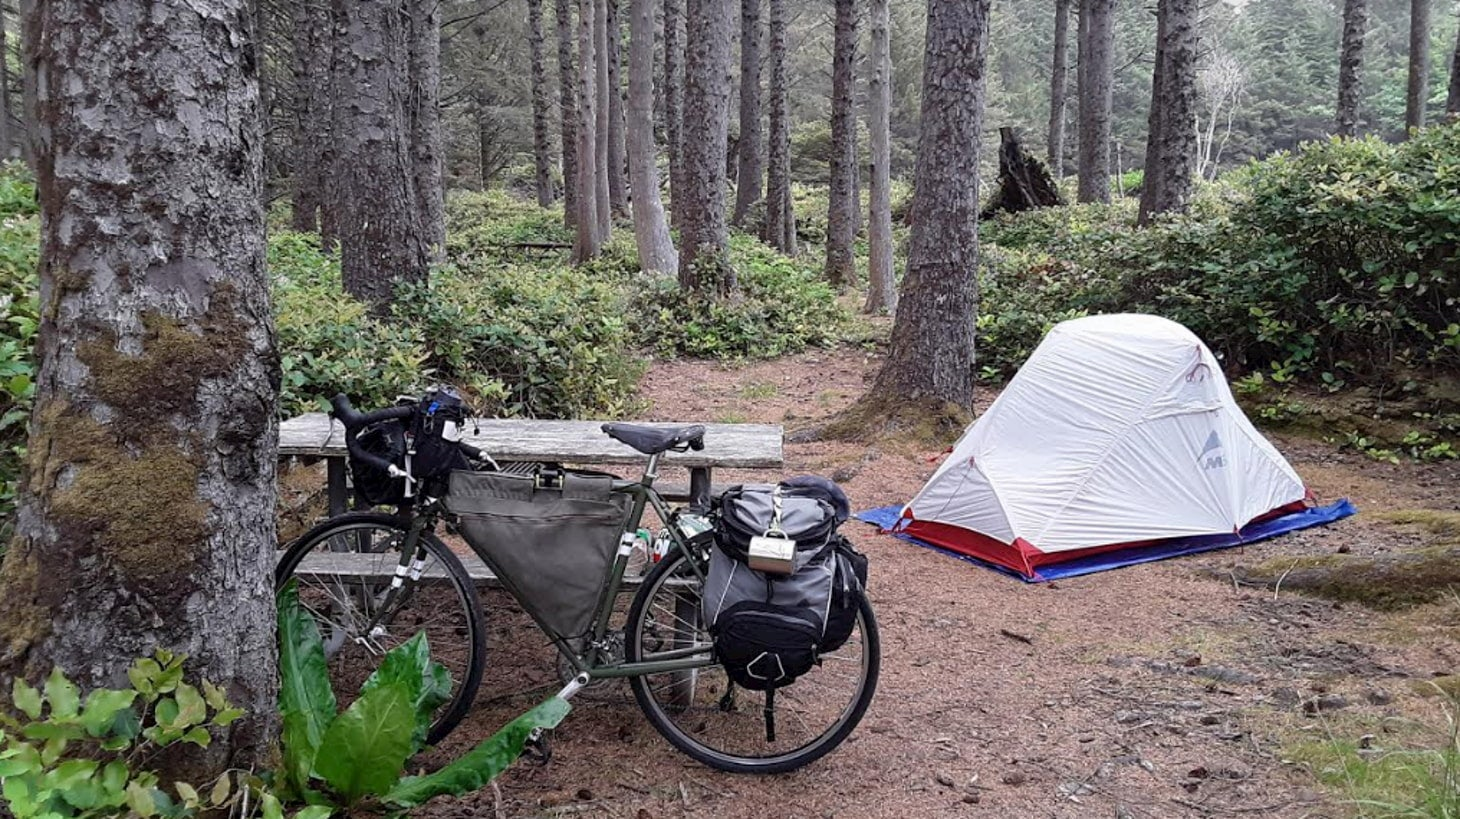 Campsite at cape lookout in forested area with tent and bike.